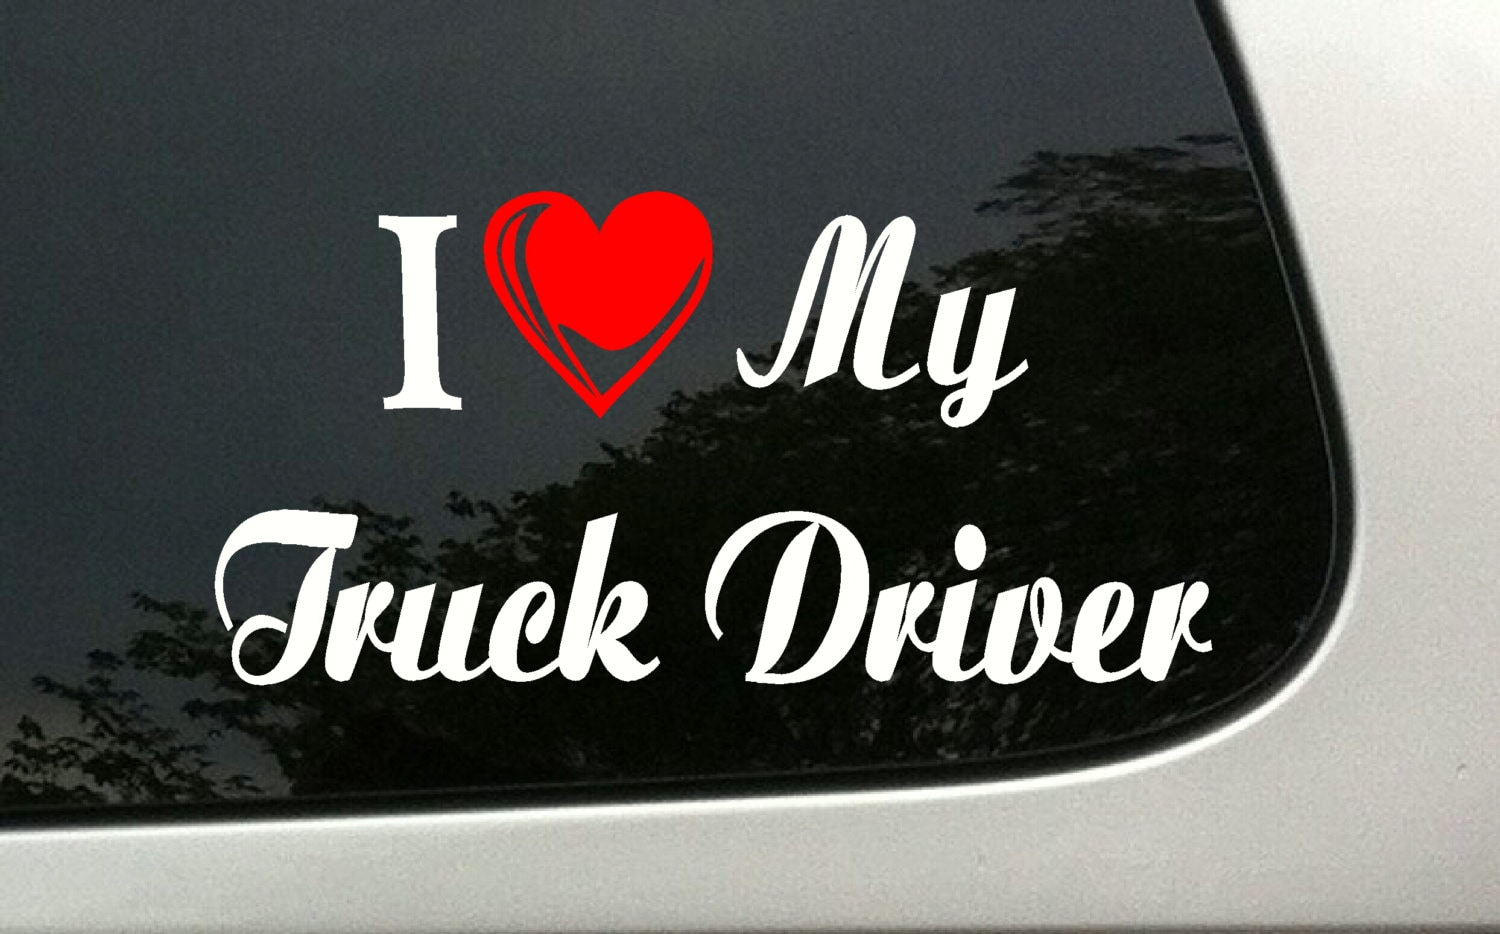 Trucker Quotes Vinyl Window Decal I Love My Truck Driver